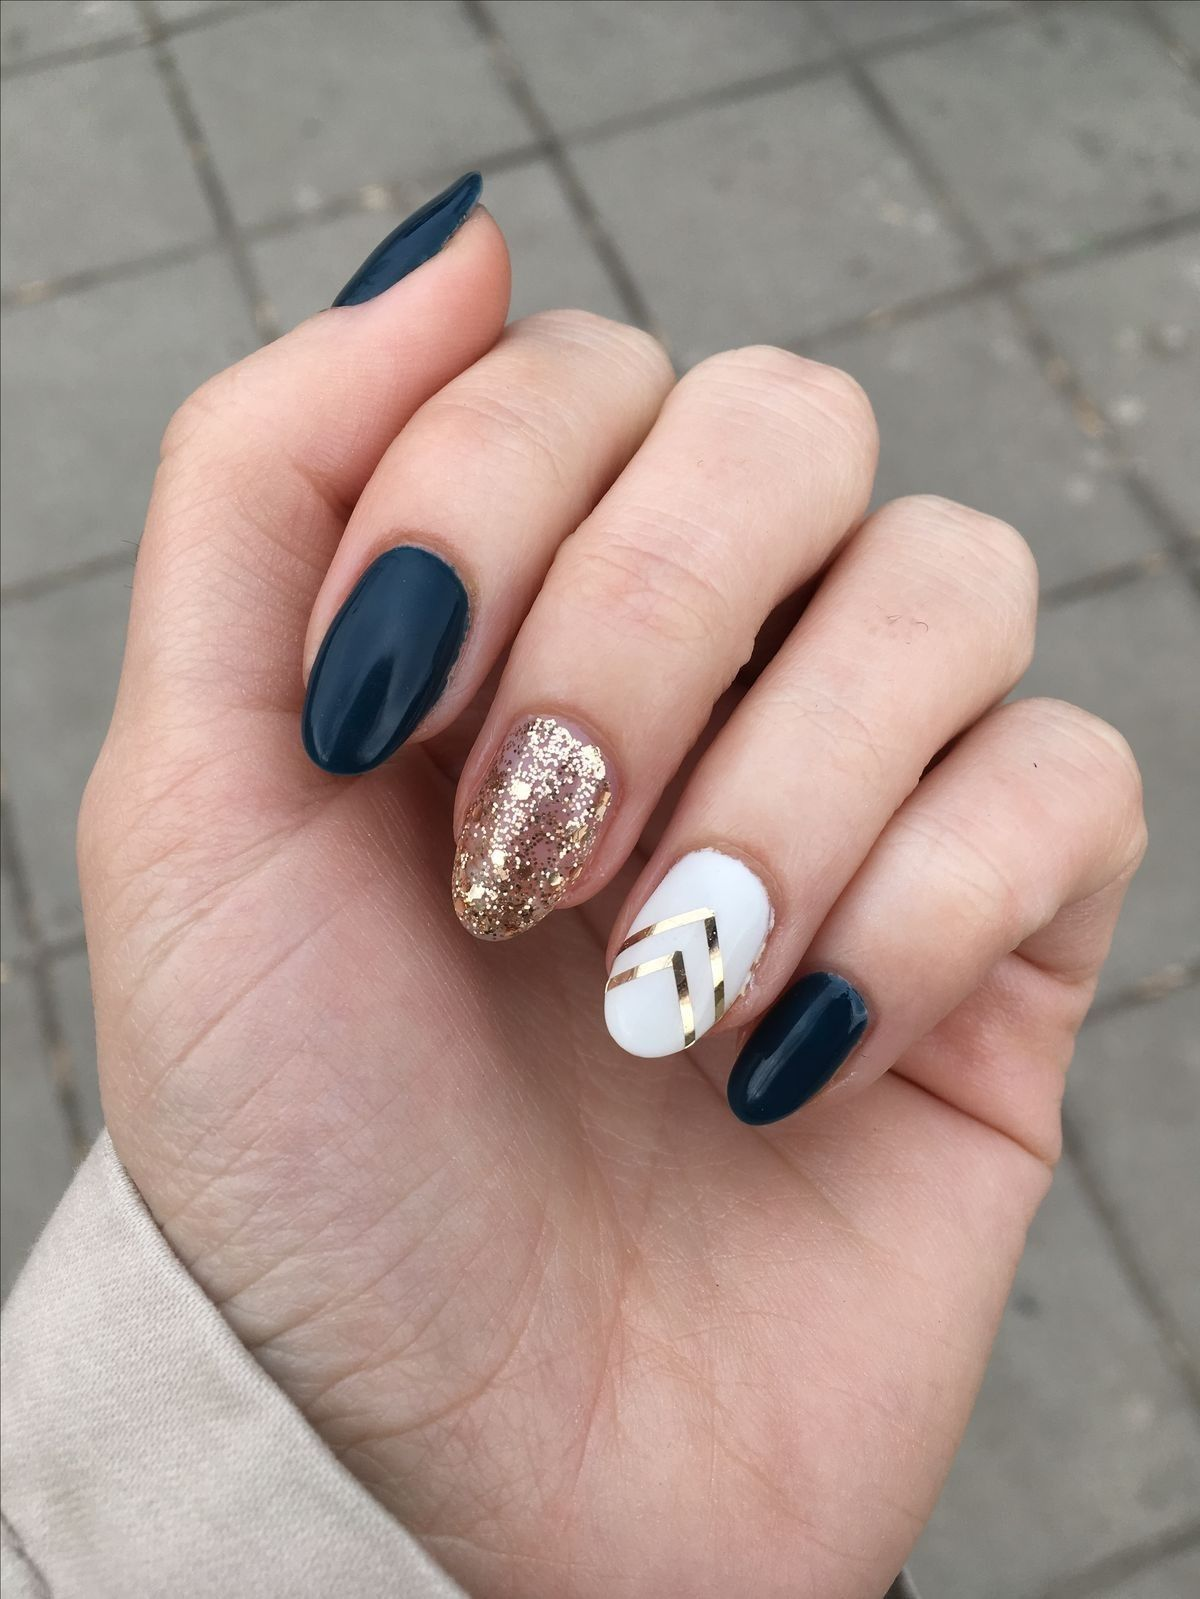 nail inspo follow romastyled for more hair makeup and nails pinterest n gel. Black Bedroom Furniture Sets. Home Design Ideas